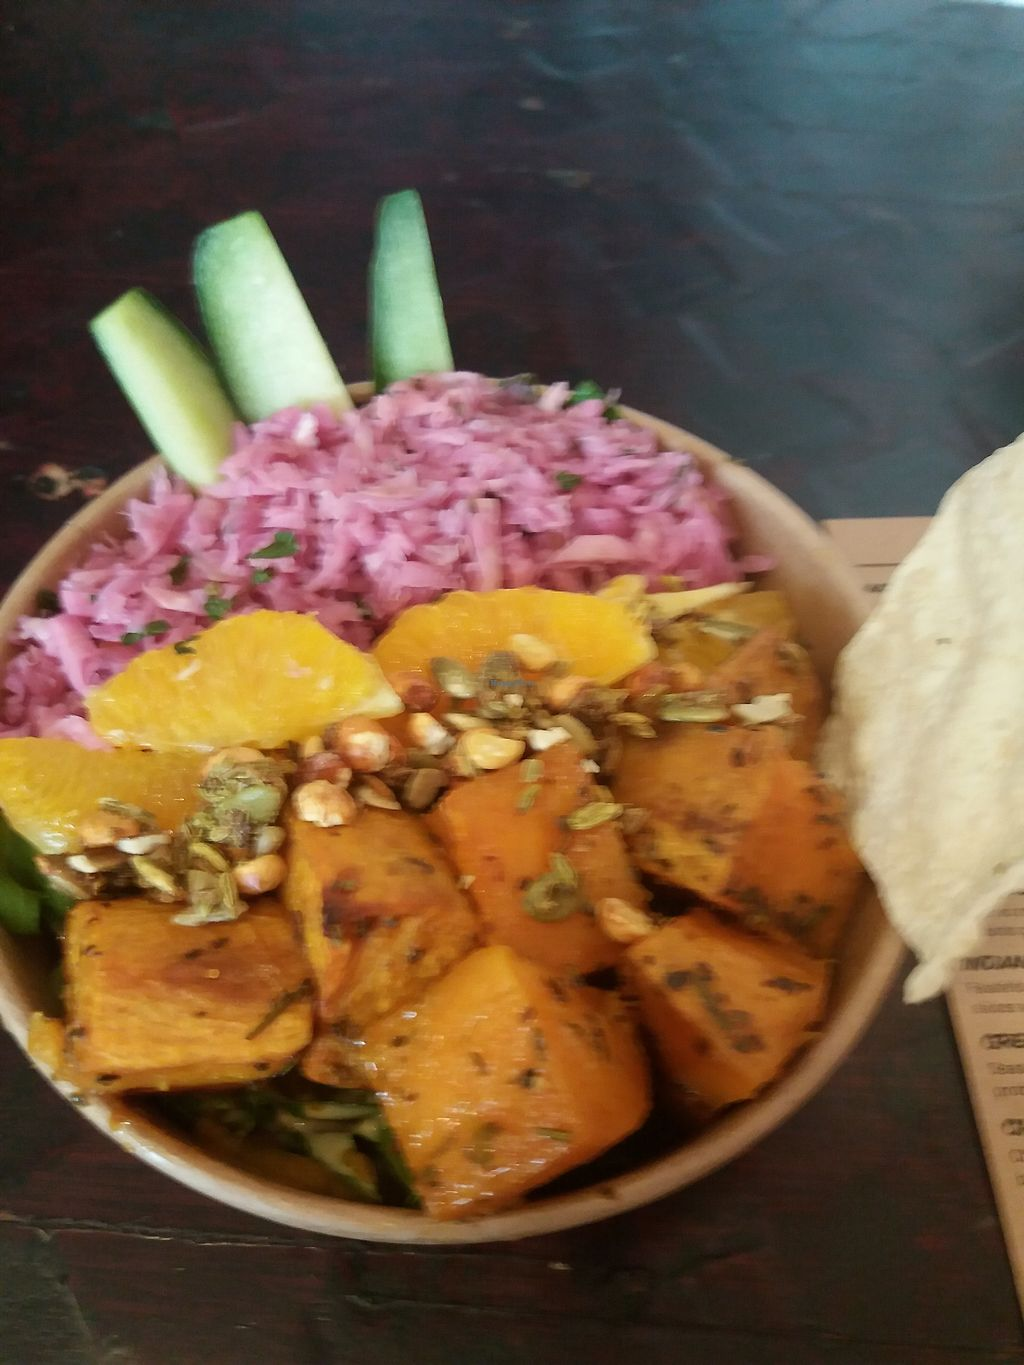 """Photo of Nalini's  by <a href=""""/members/profile/veganvirtues"""">veganvirtues</a> <br/>Dosa roasted bowl <br/> September 22, 2017  - <a href='/contact/abuse/image/64041/306966'>Report</a>"""